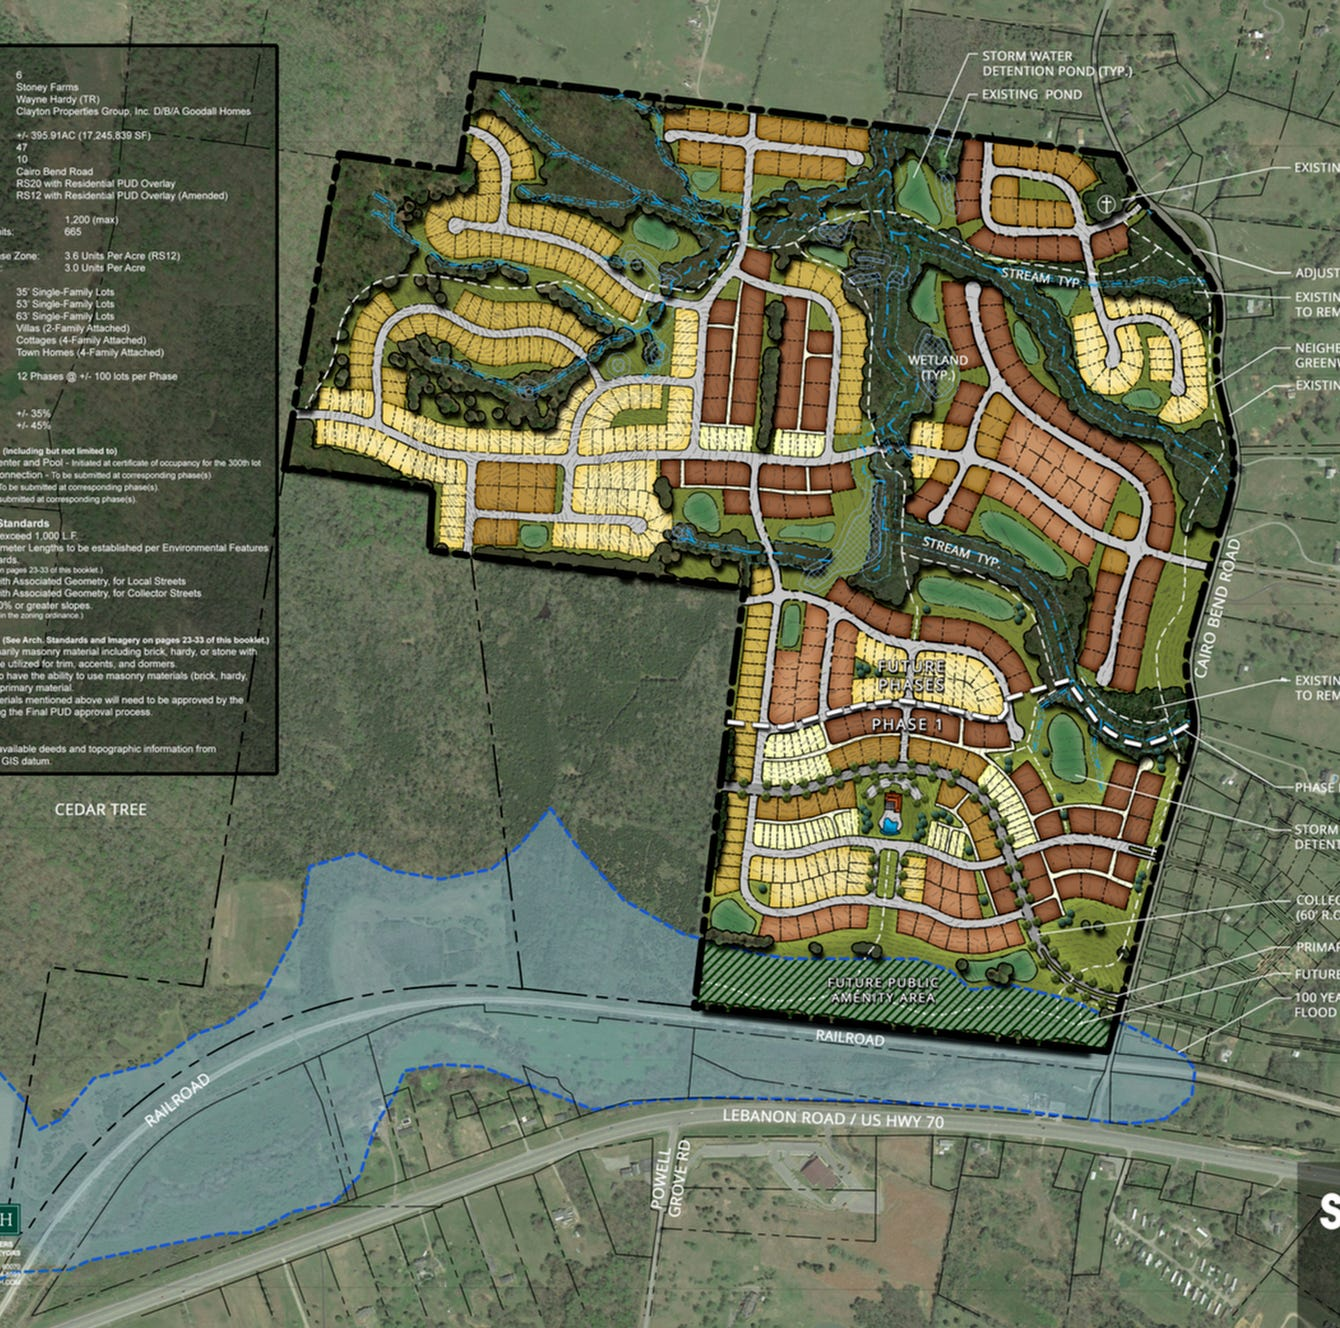 Stoney Farms development proposes 1,200 new homes in Lebanon